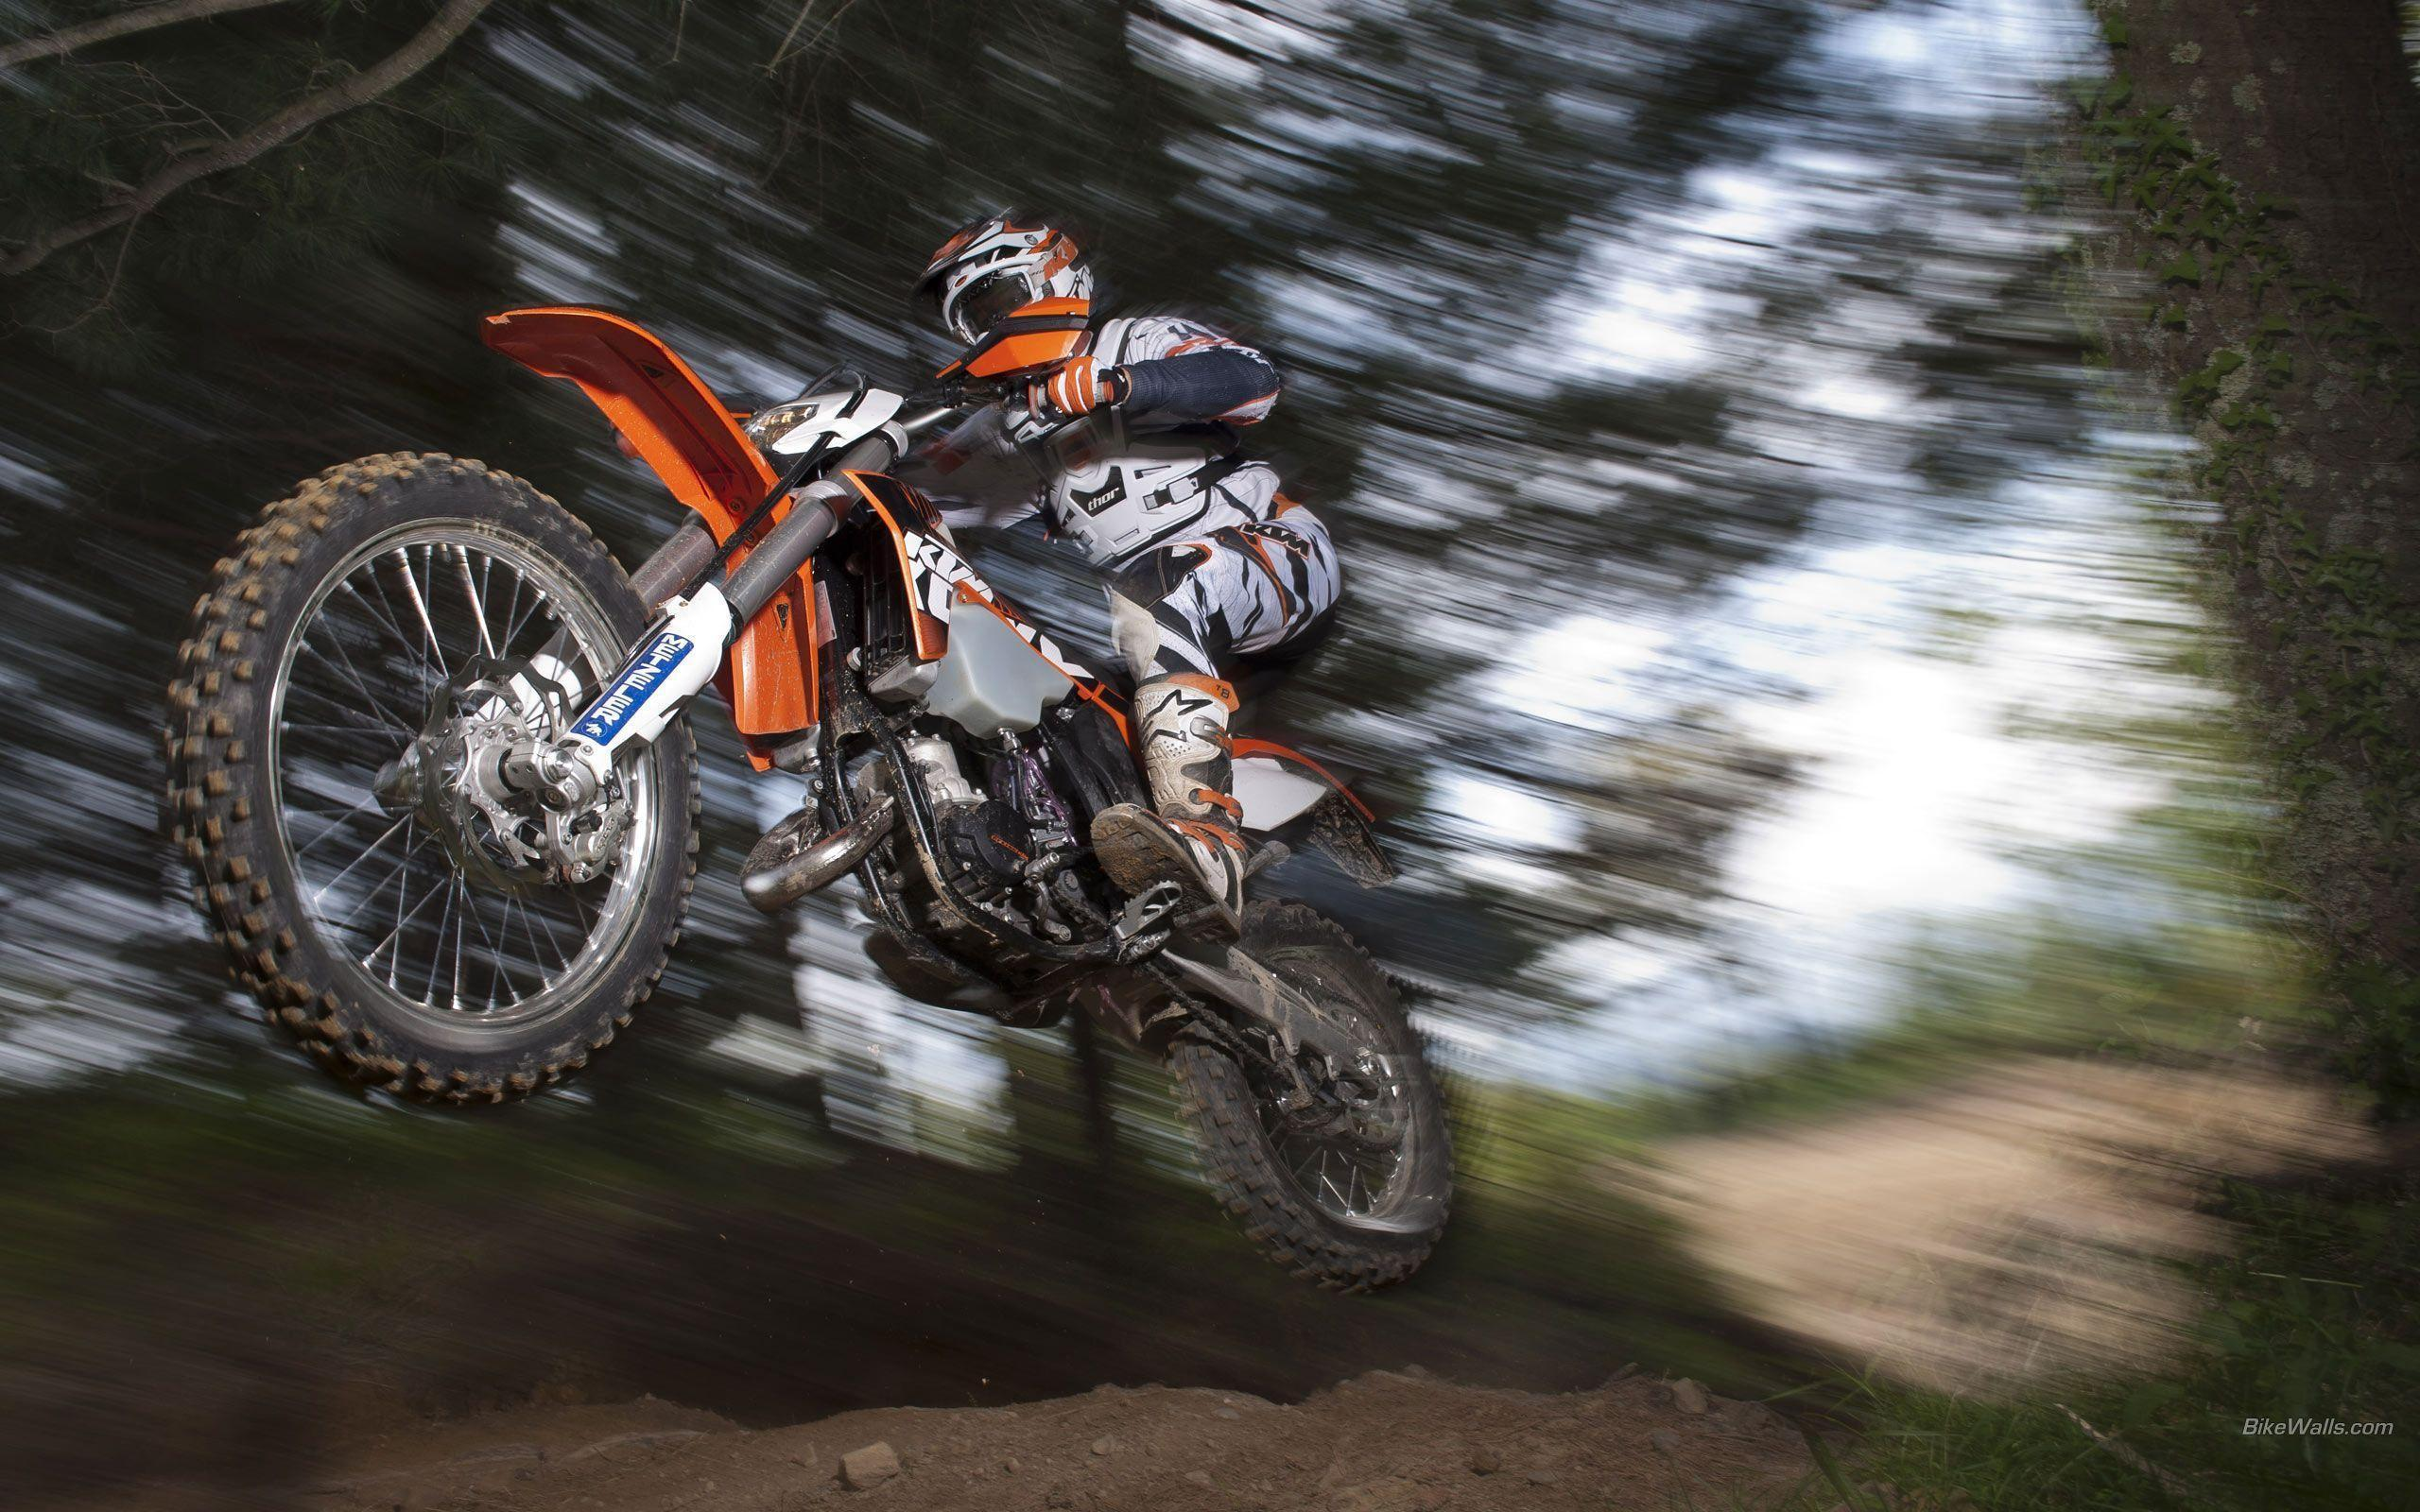 Ktm Wallpapers - Full HD wallpaper search - page 2